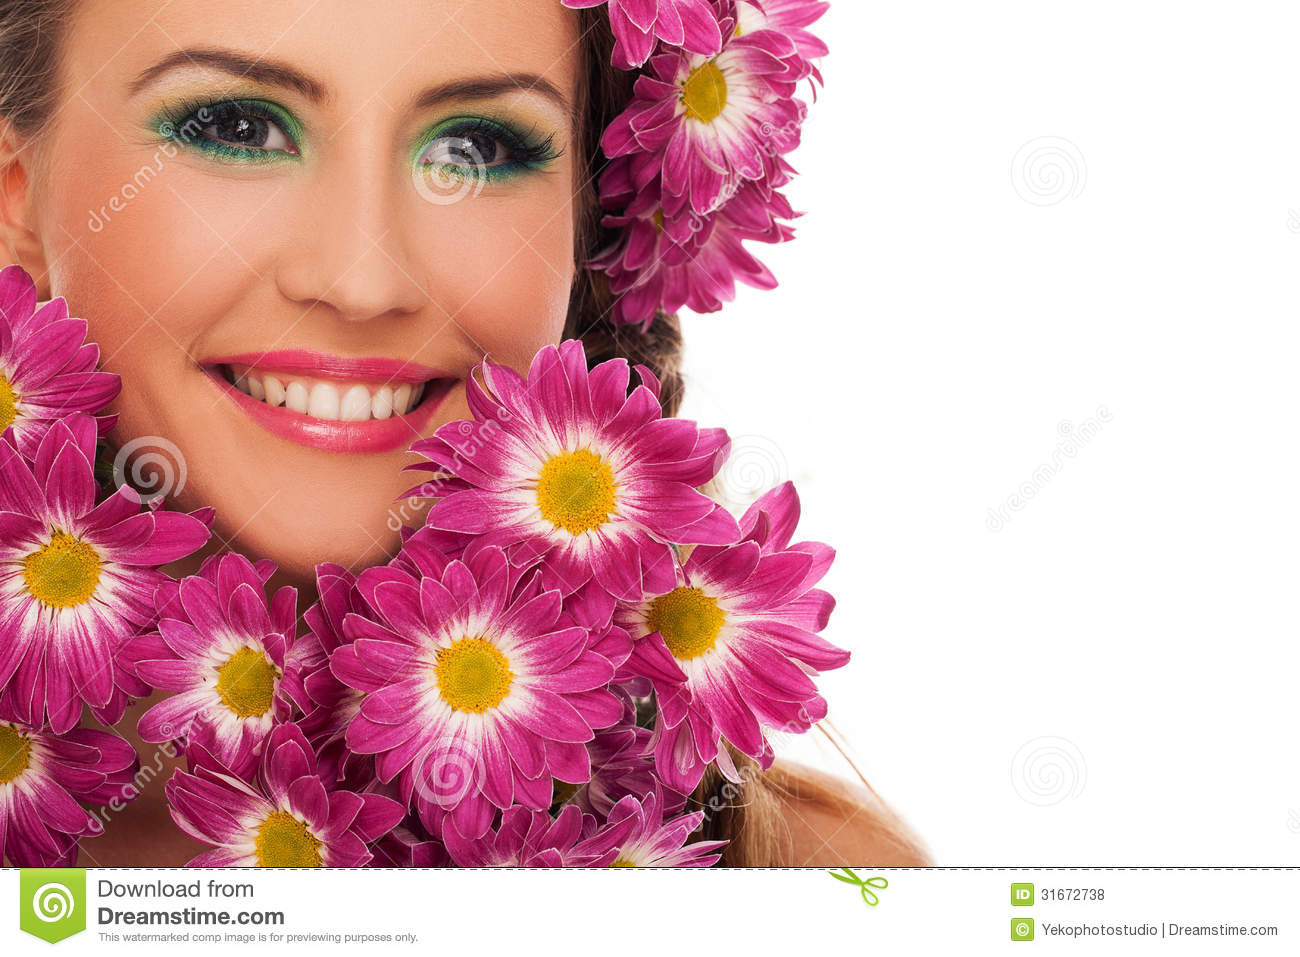 Beautiful woman with flowers in hair stock images image 31803334 young beautiful woman with flowers in hair royalty free stock photos dhlflorist Gallery